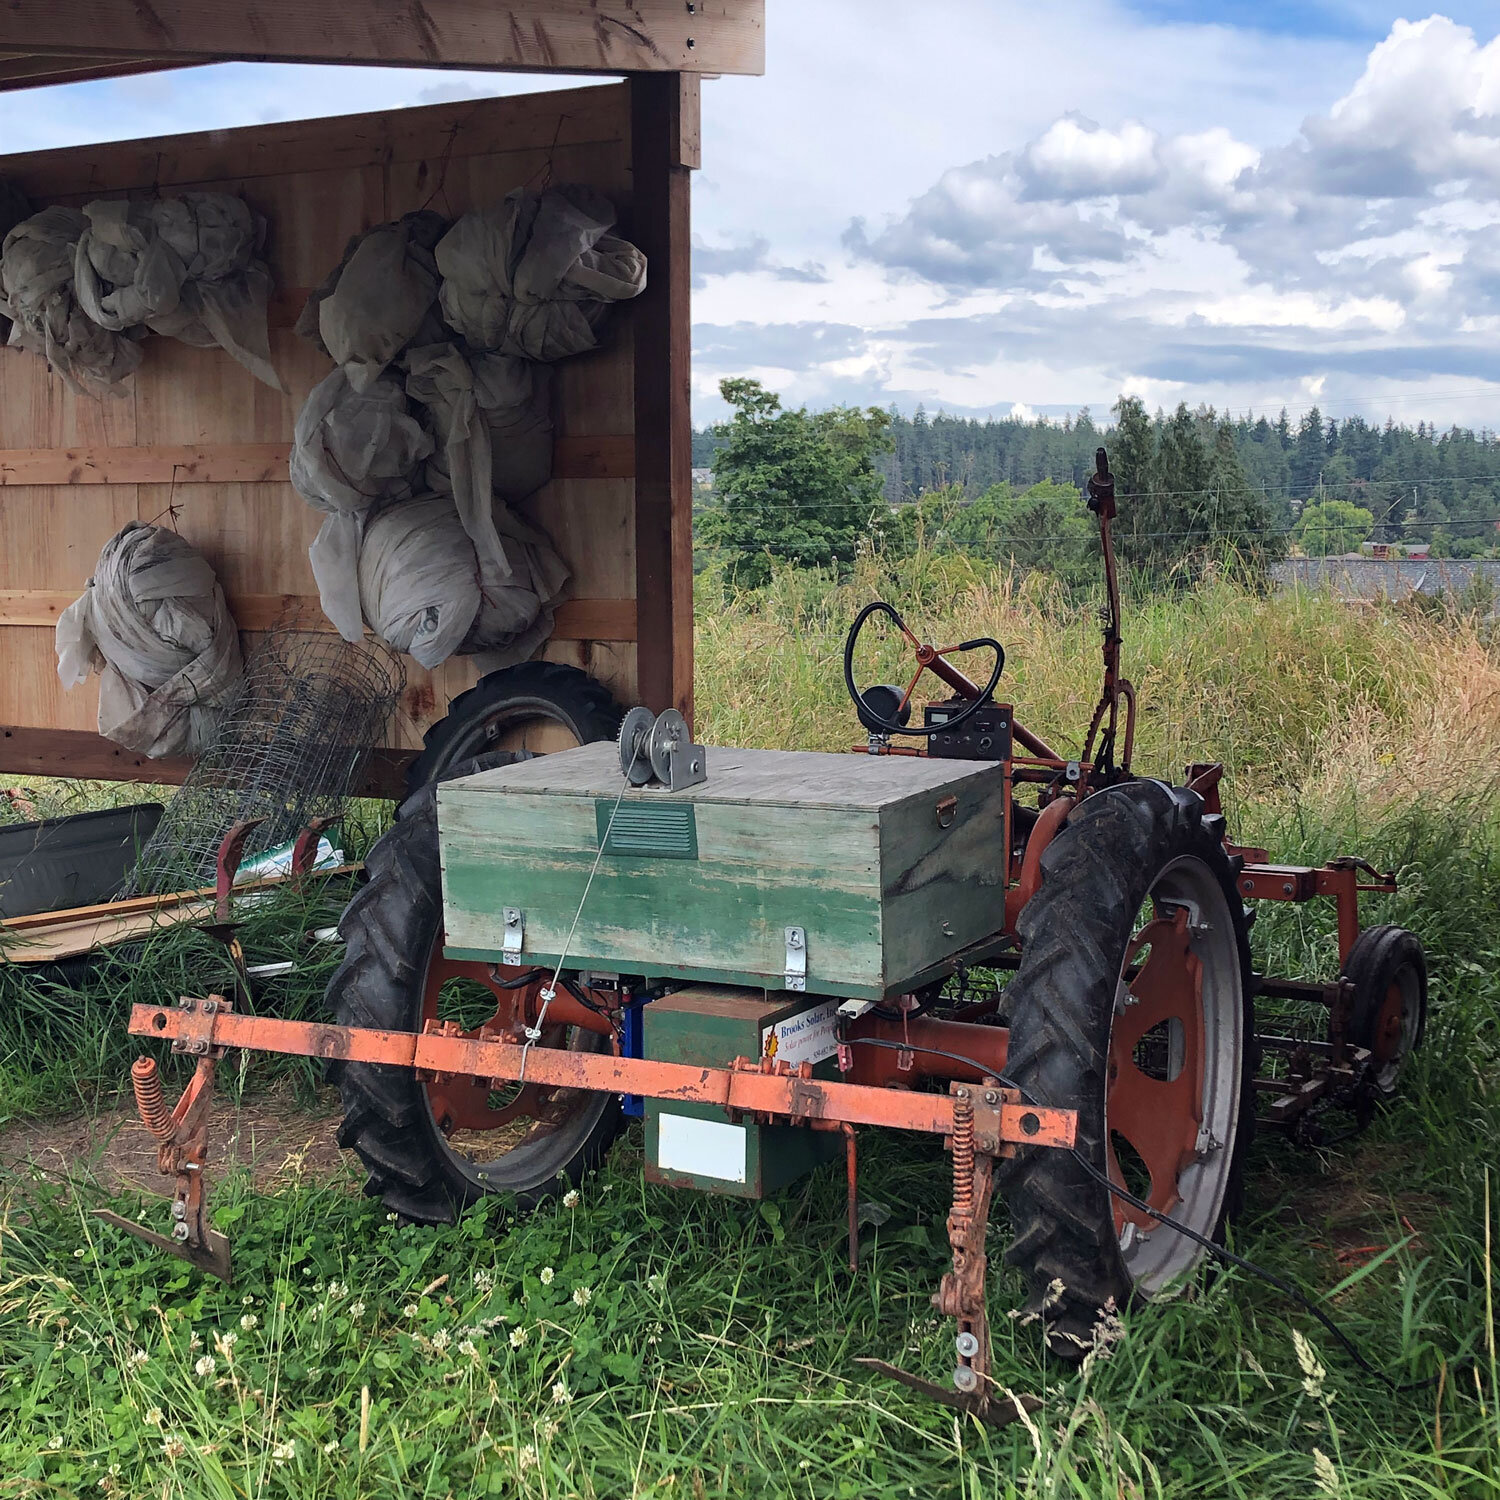 Tractor and supplies